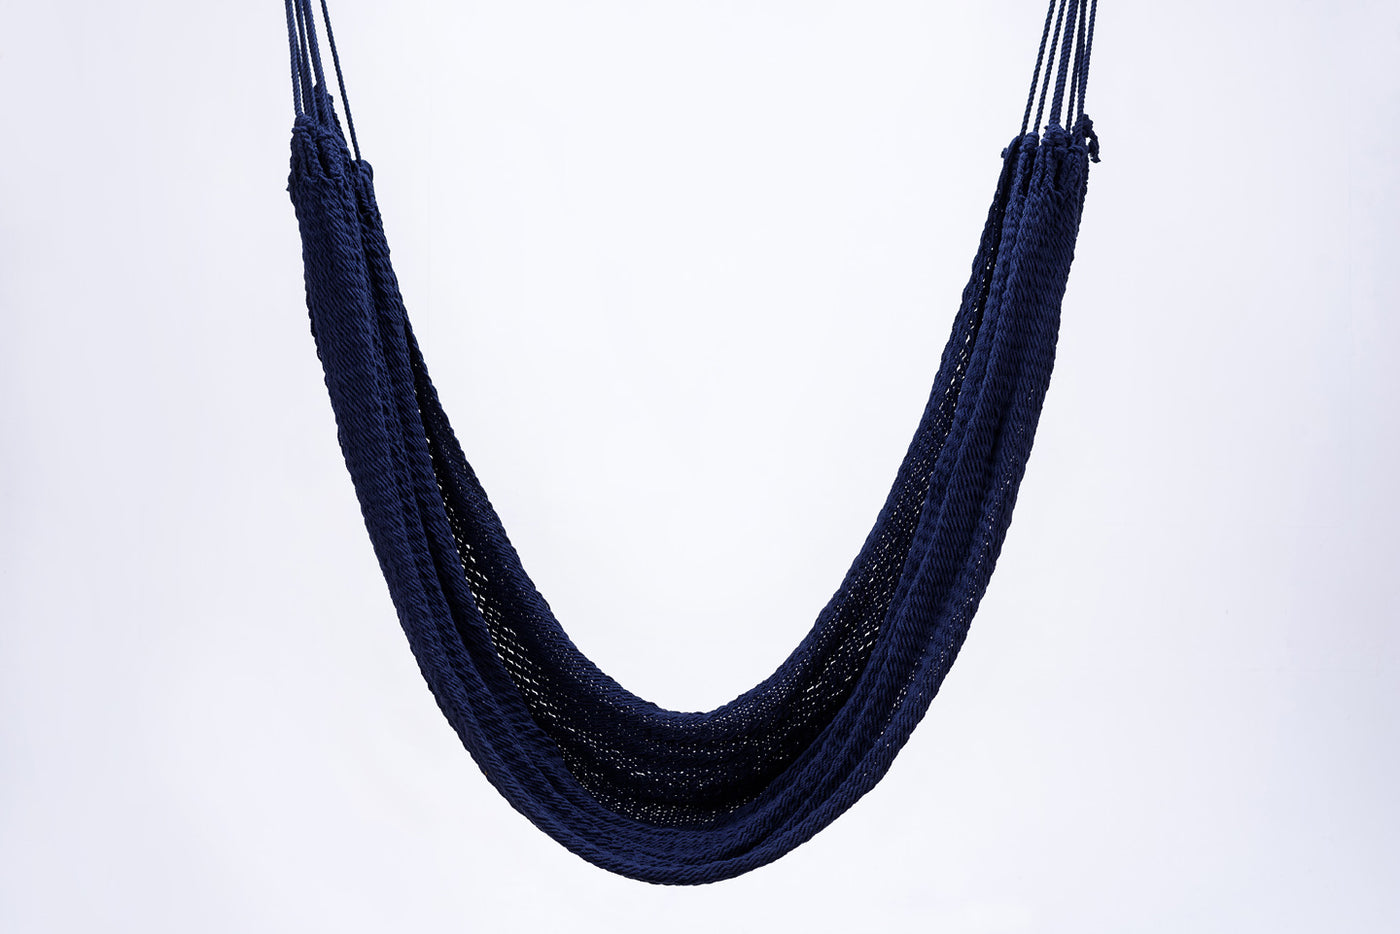 Cotton Navy Blue Hammock Handmade High Quality